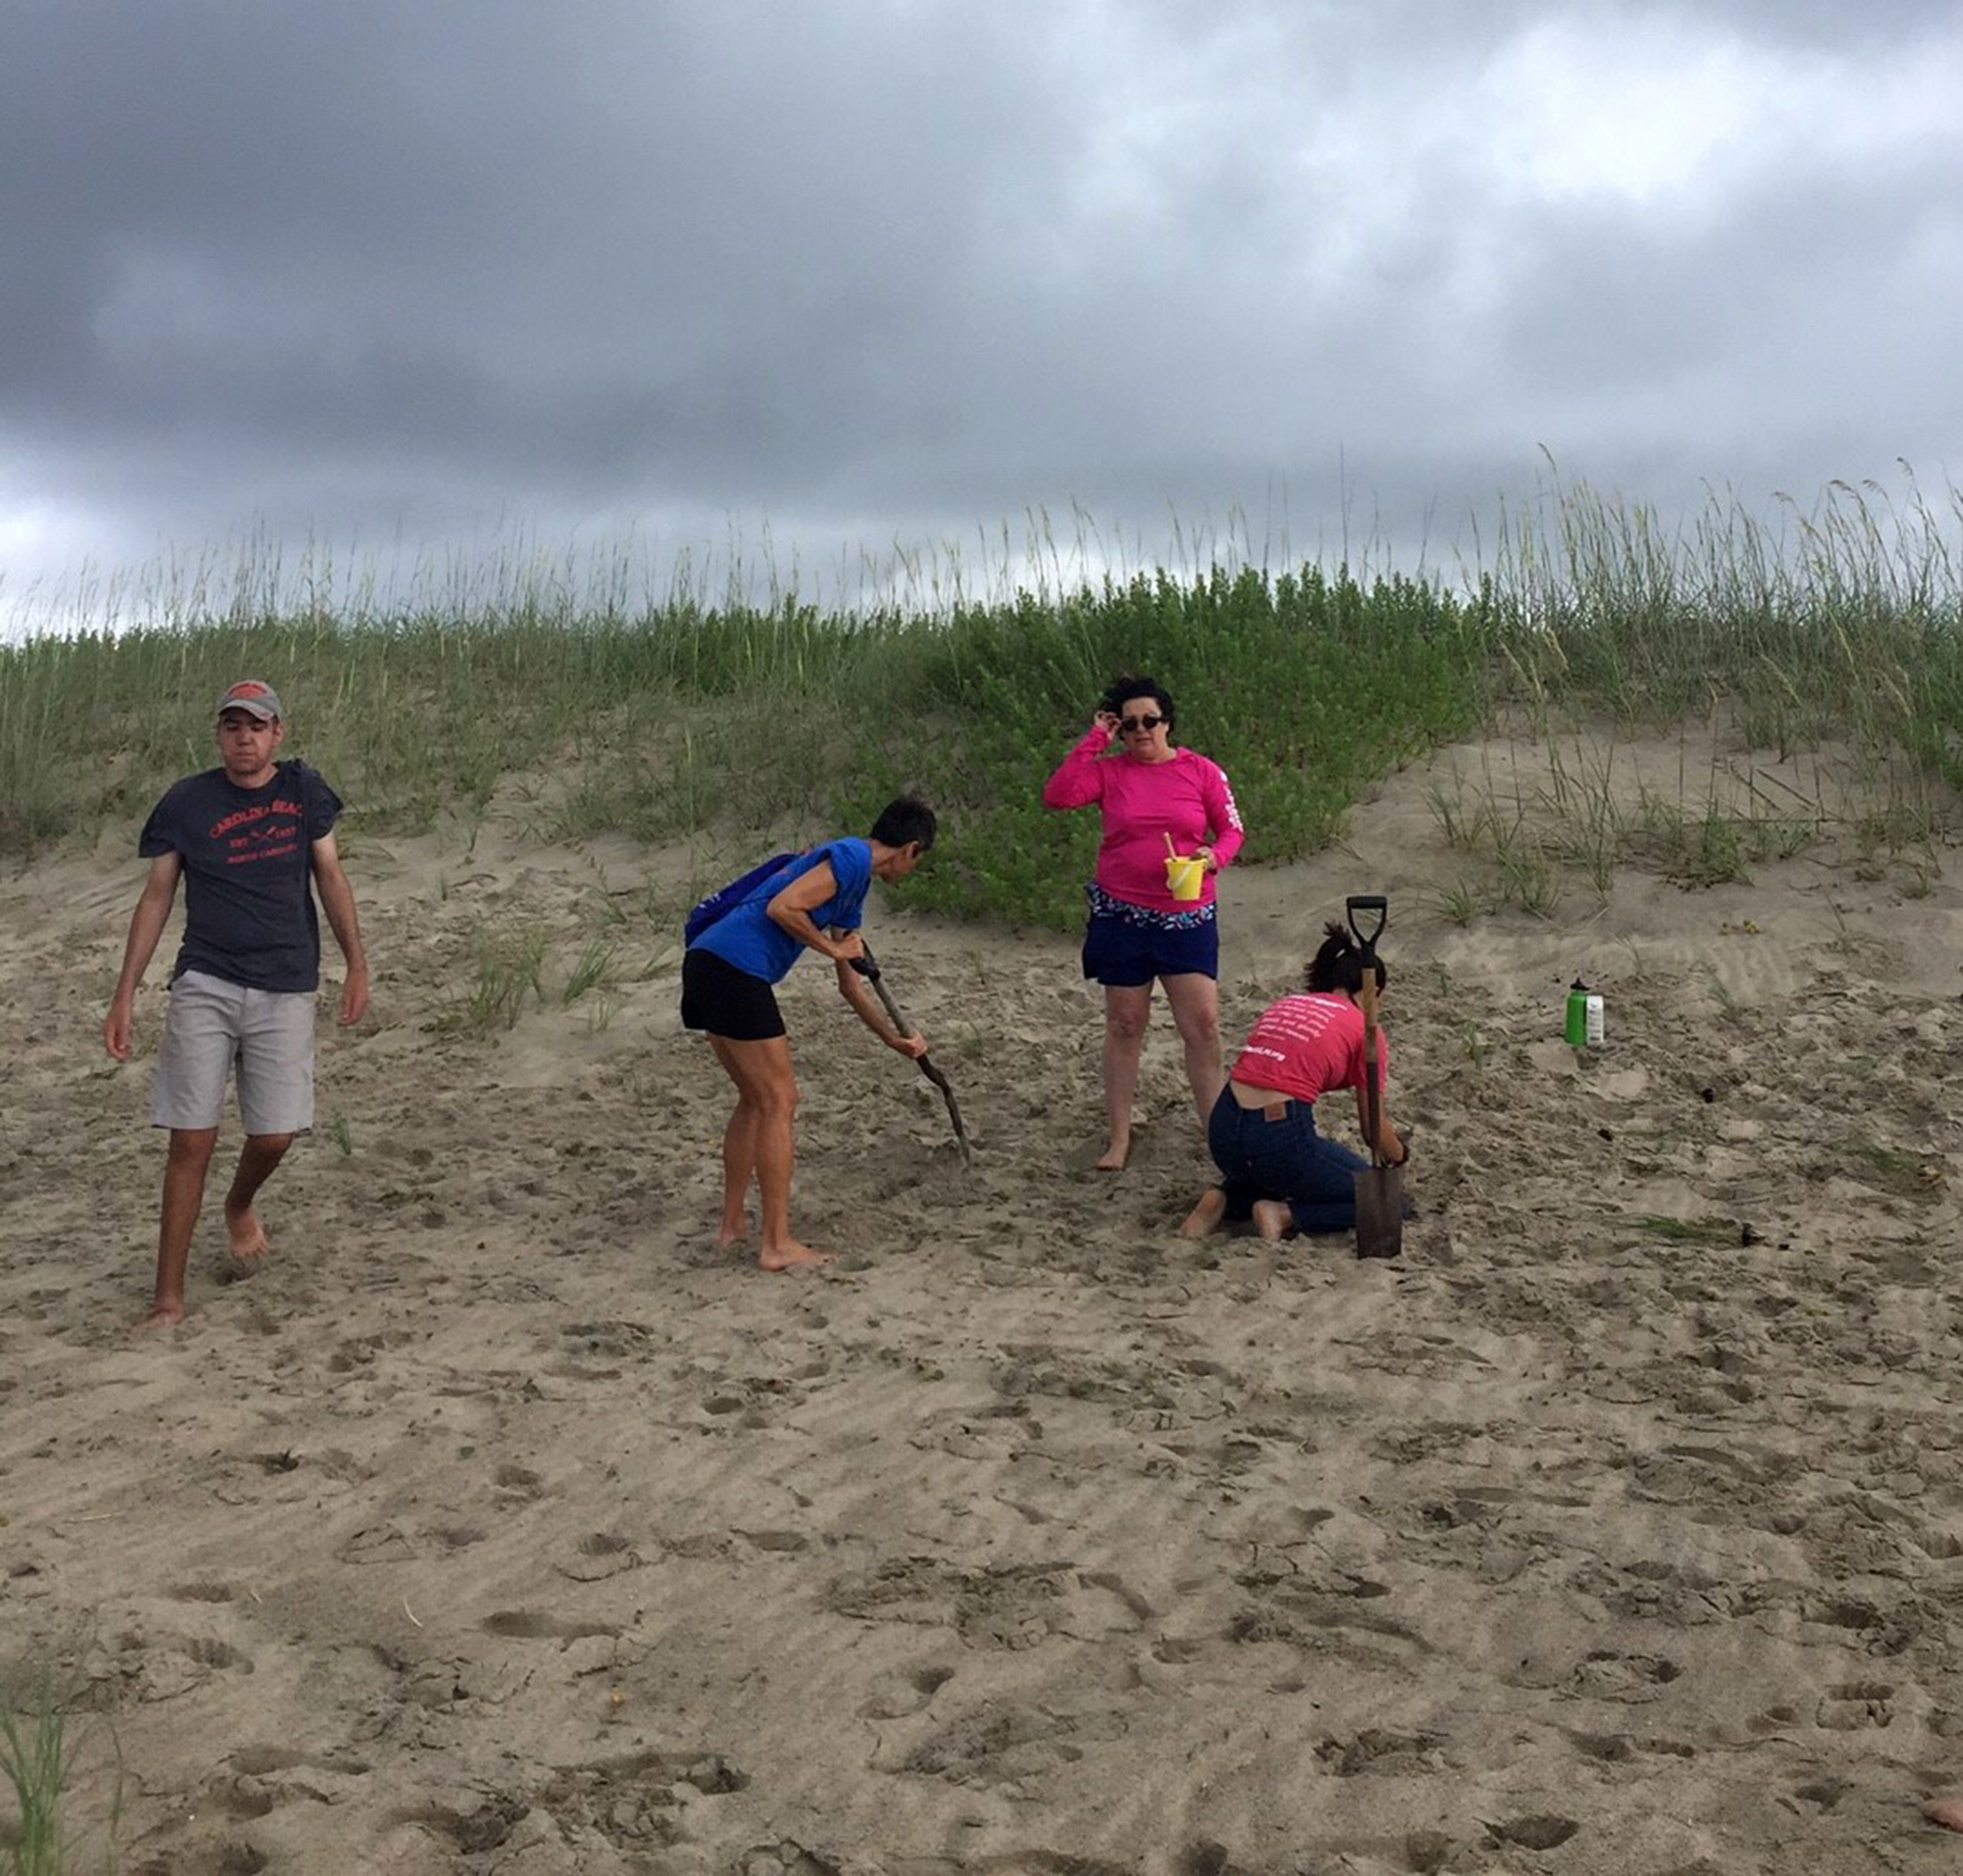 group of people cleaning up a beach